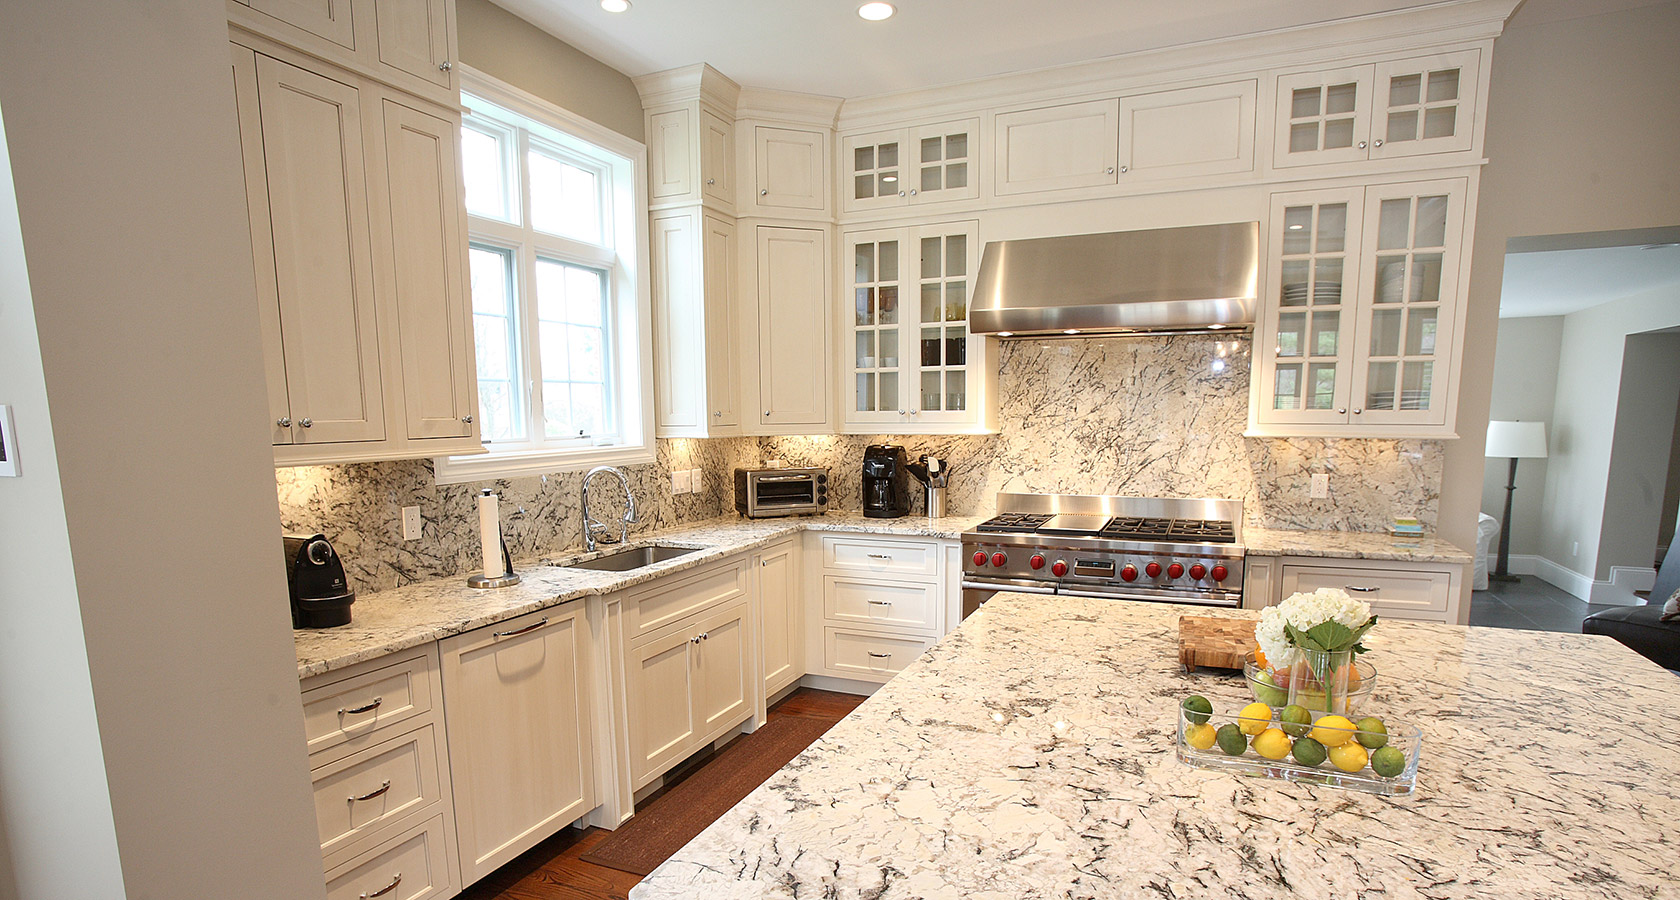 Persian pearl granite countertop kitchen design ideas Granite kitchen design ideas